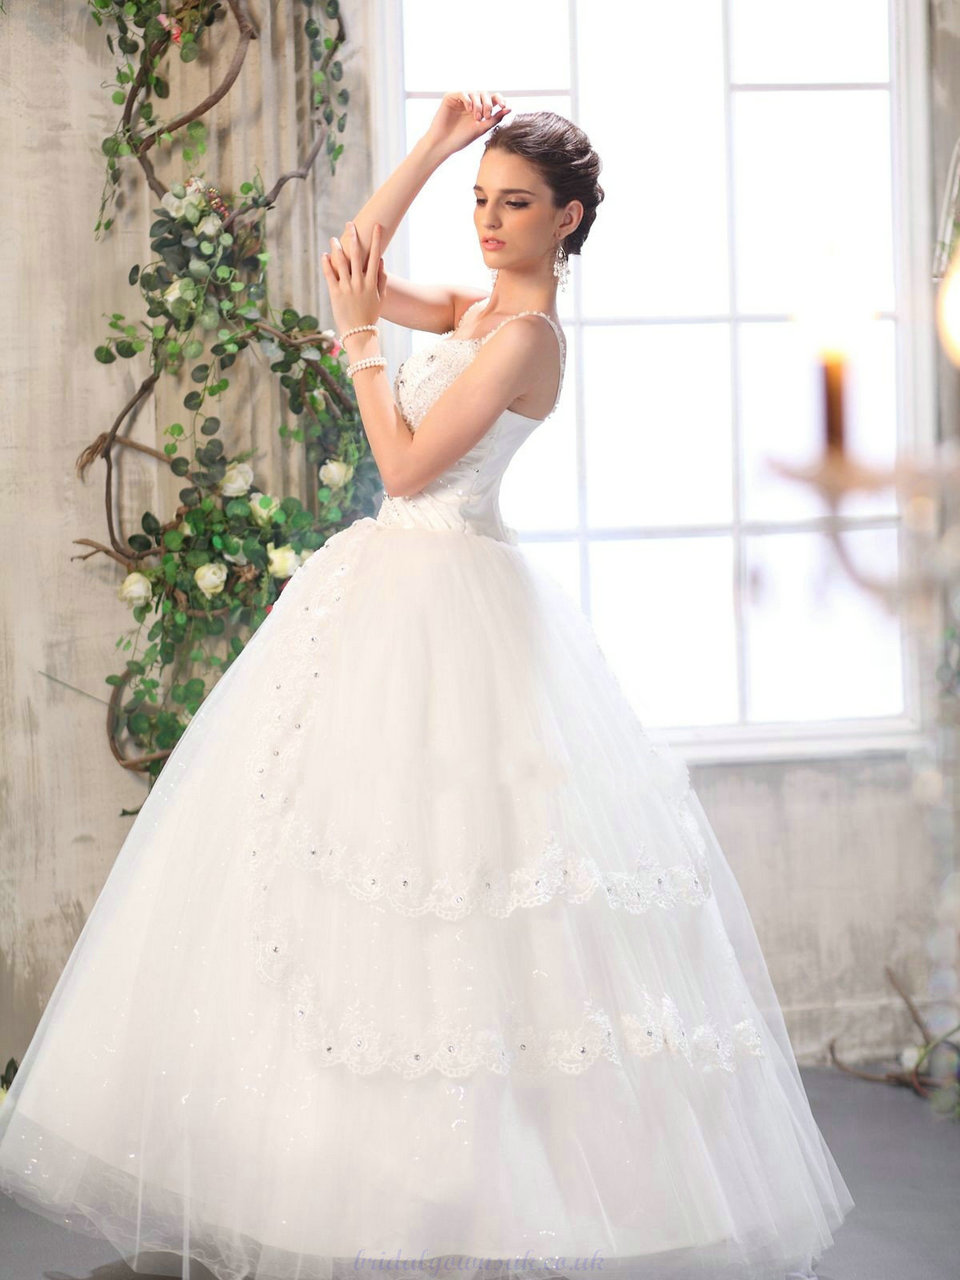 Wedding dress care: how to make everything right before and after the celebration 58